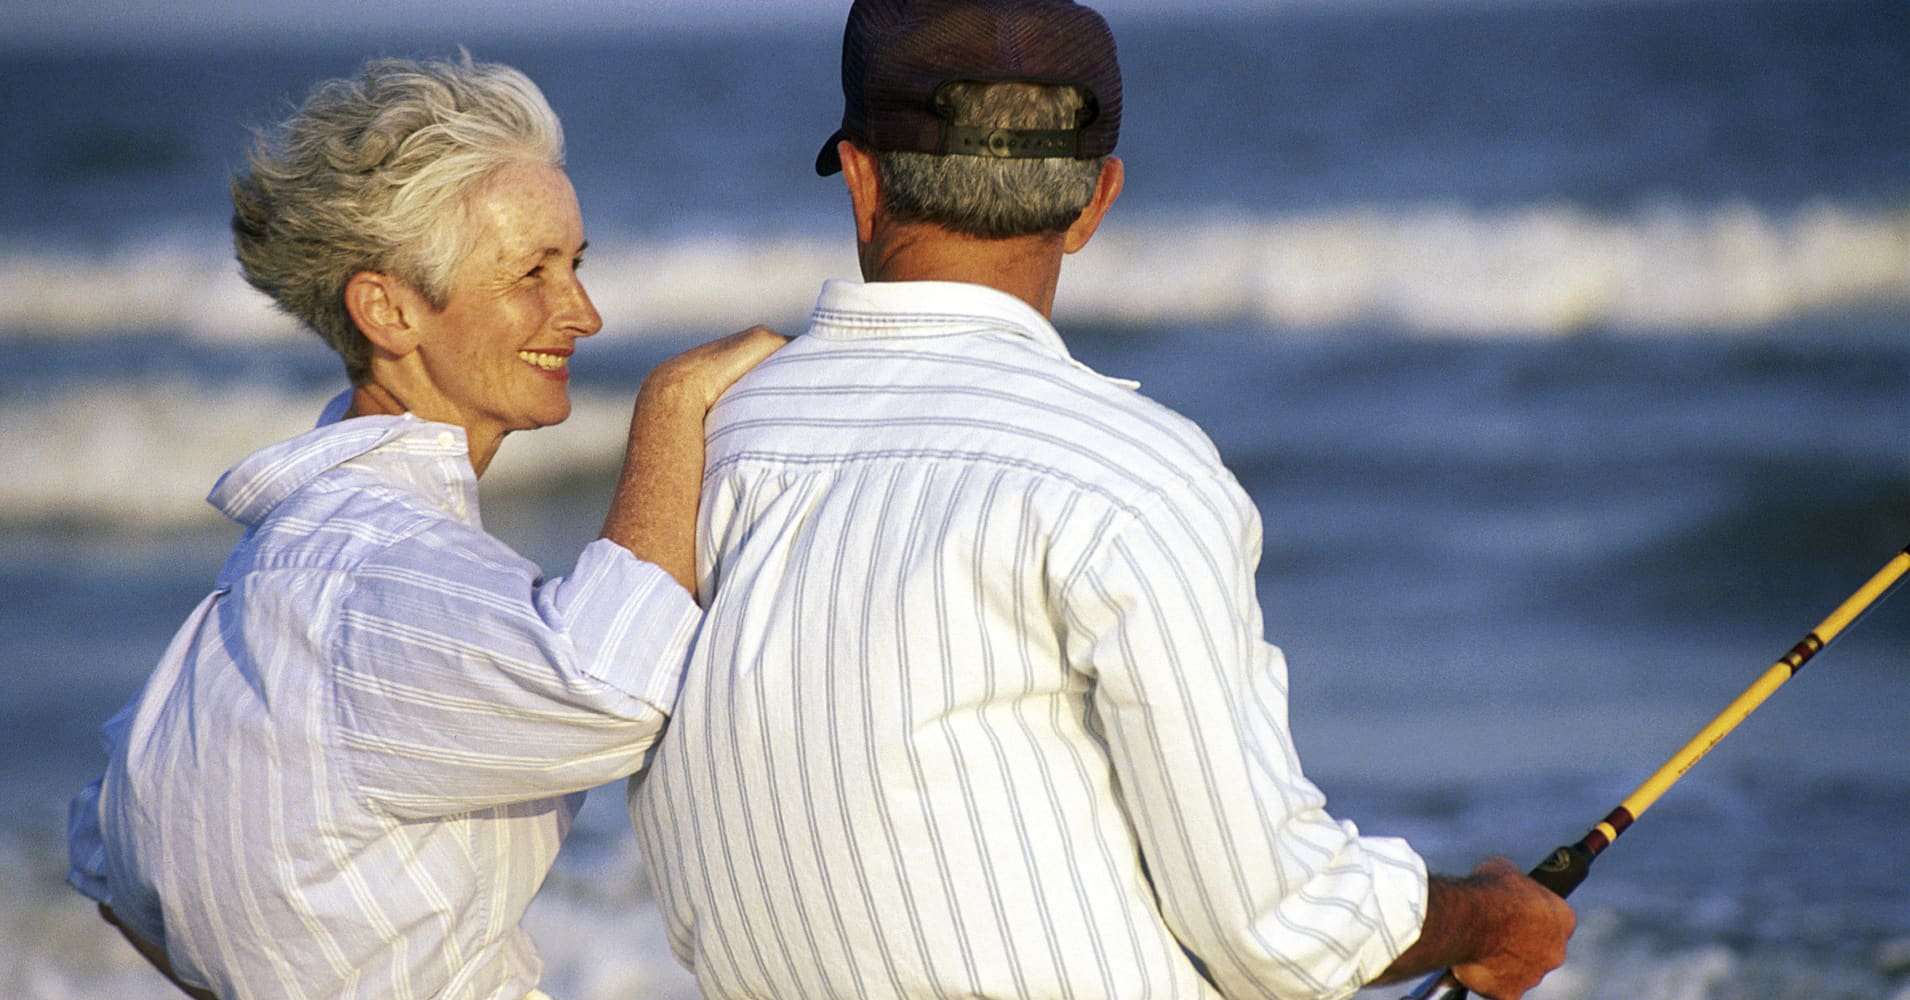 If you are turning 70½, prepare to withdraw from retirement accounts